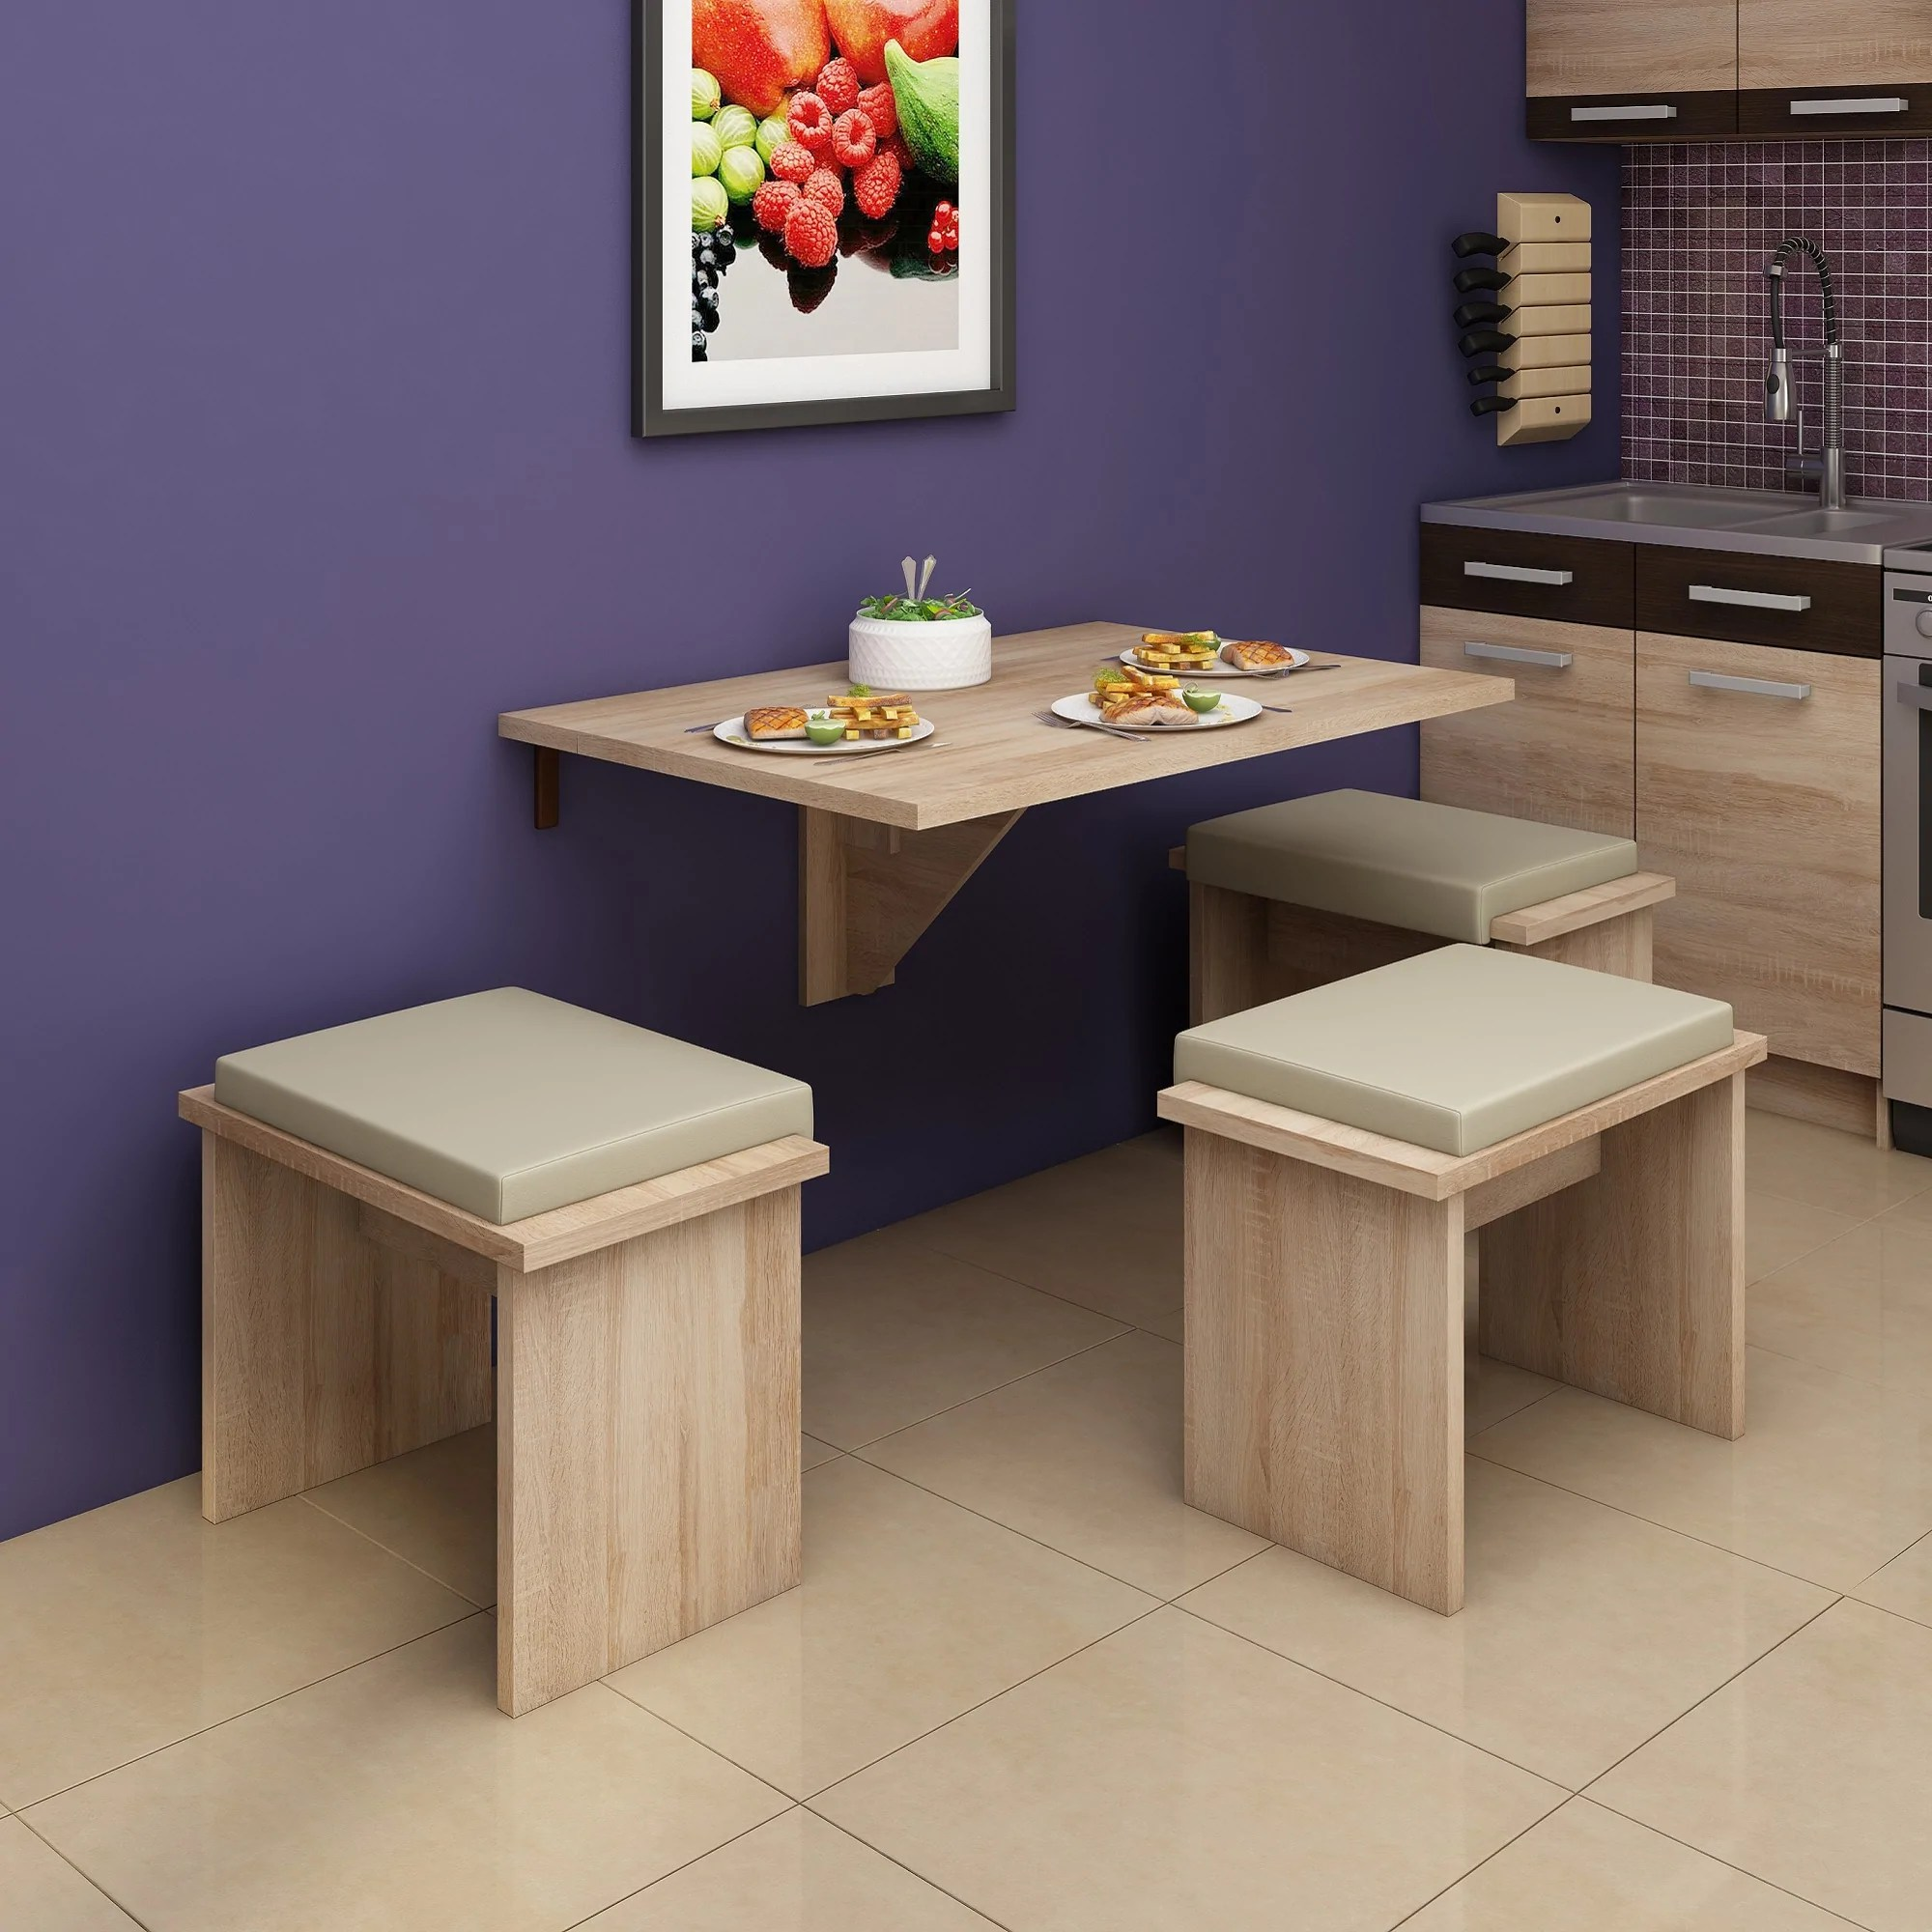 Wall Mounted Dinner Table Expert D Wall Mounted Drop Leaf Dining Table Furniture Agency